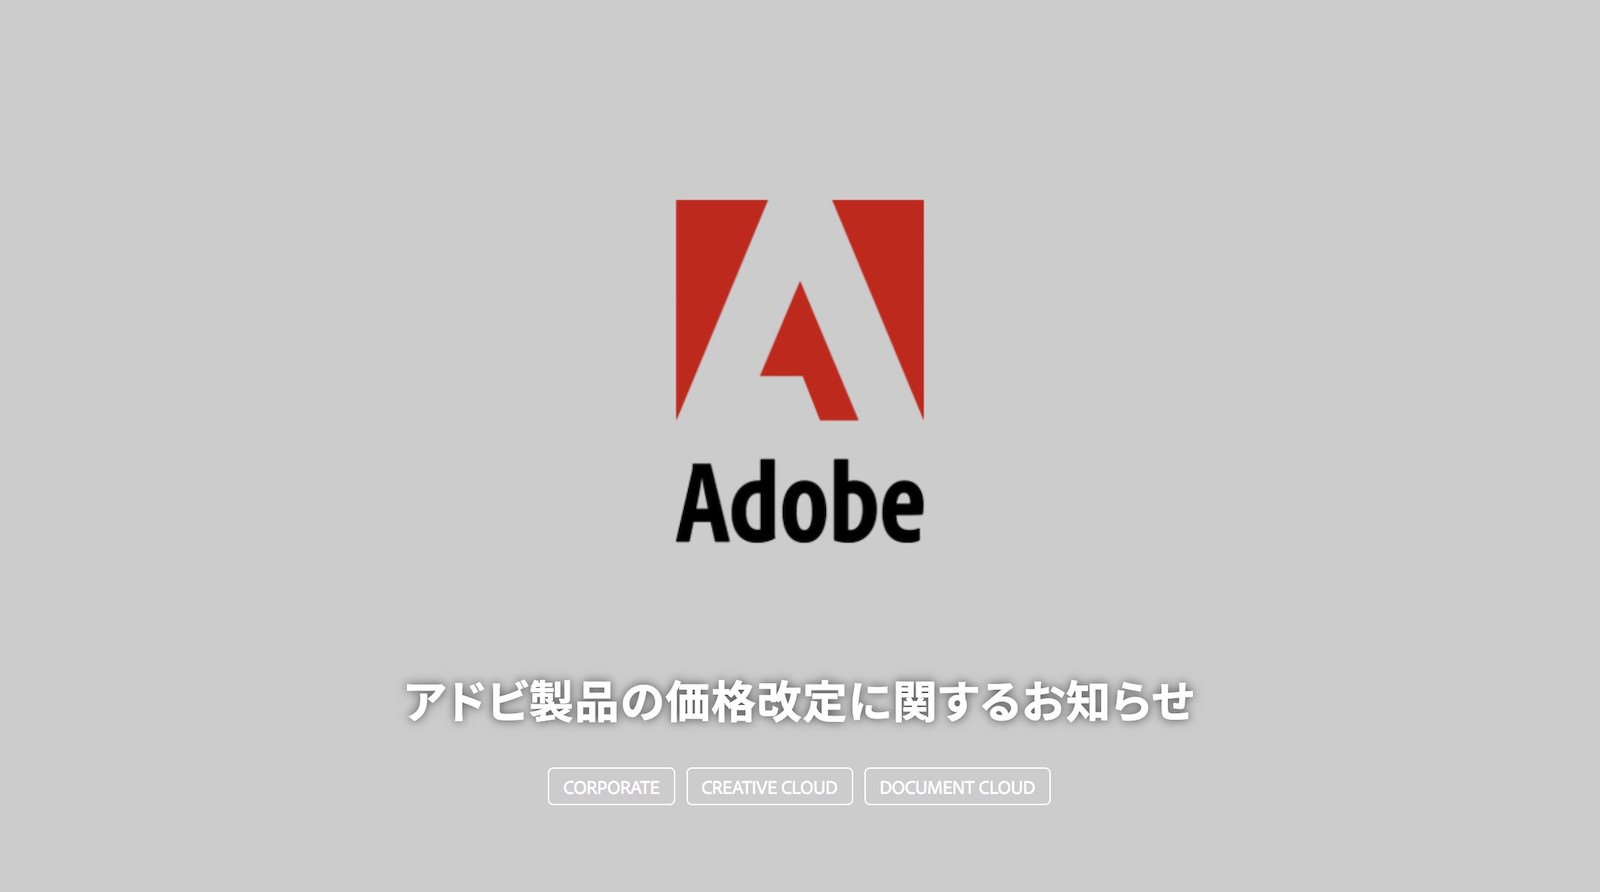 General adobe updates pricing